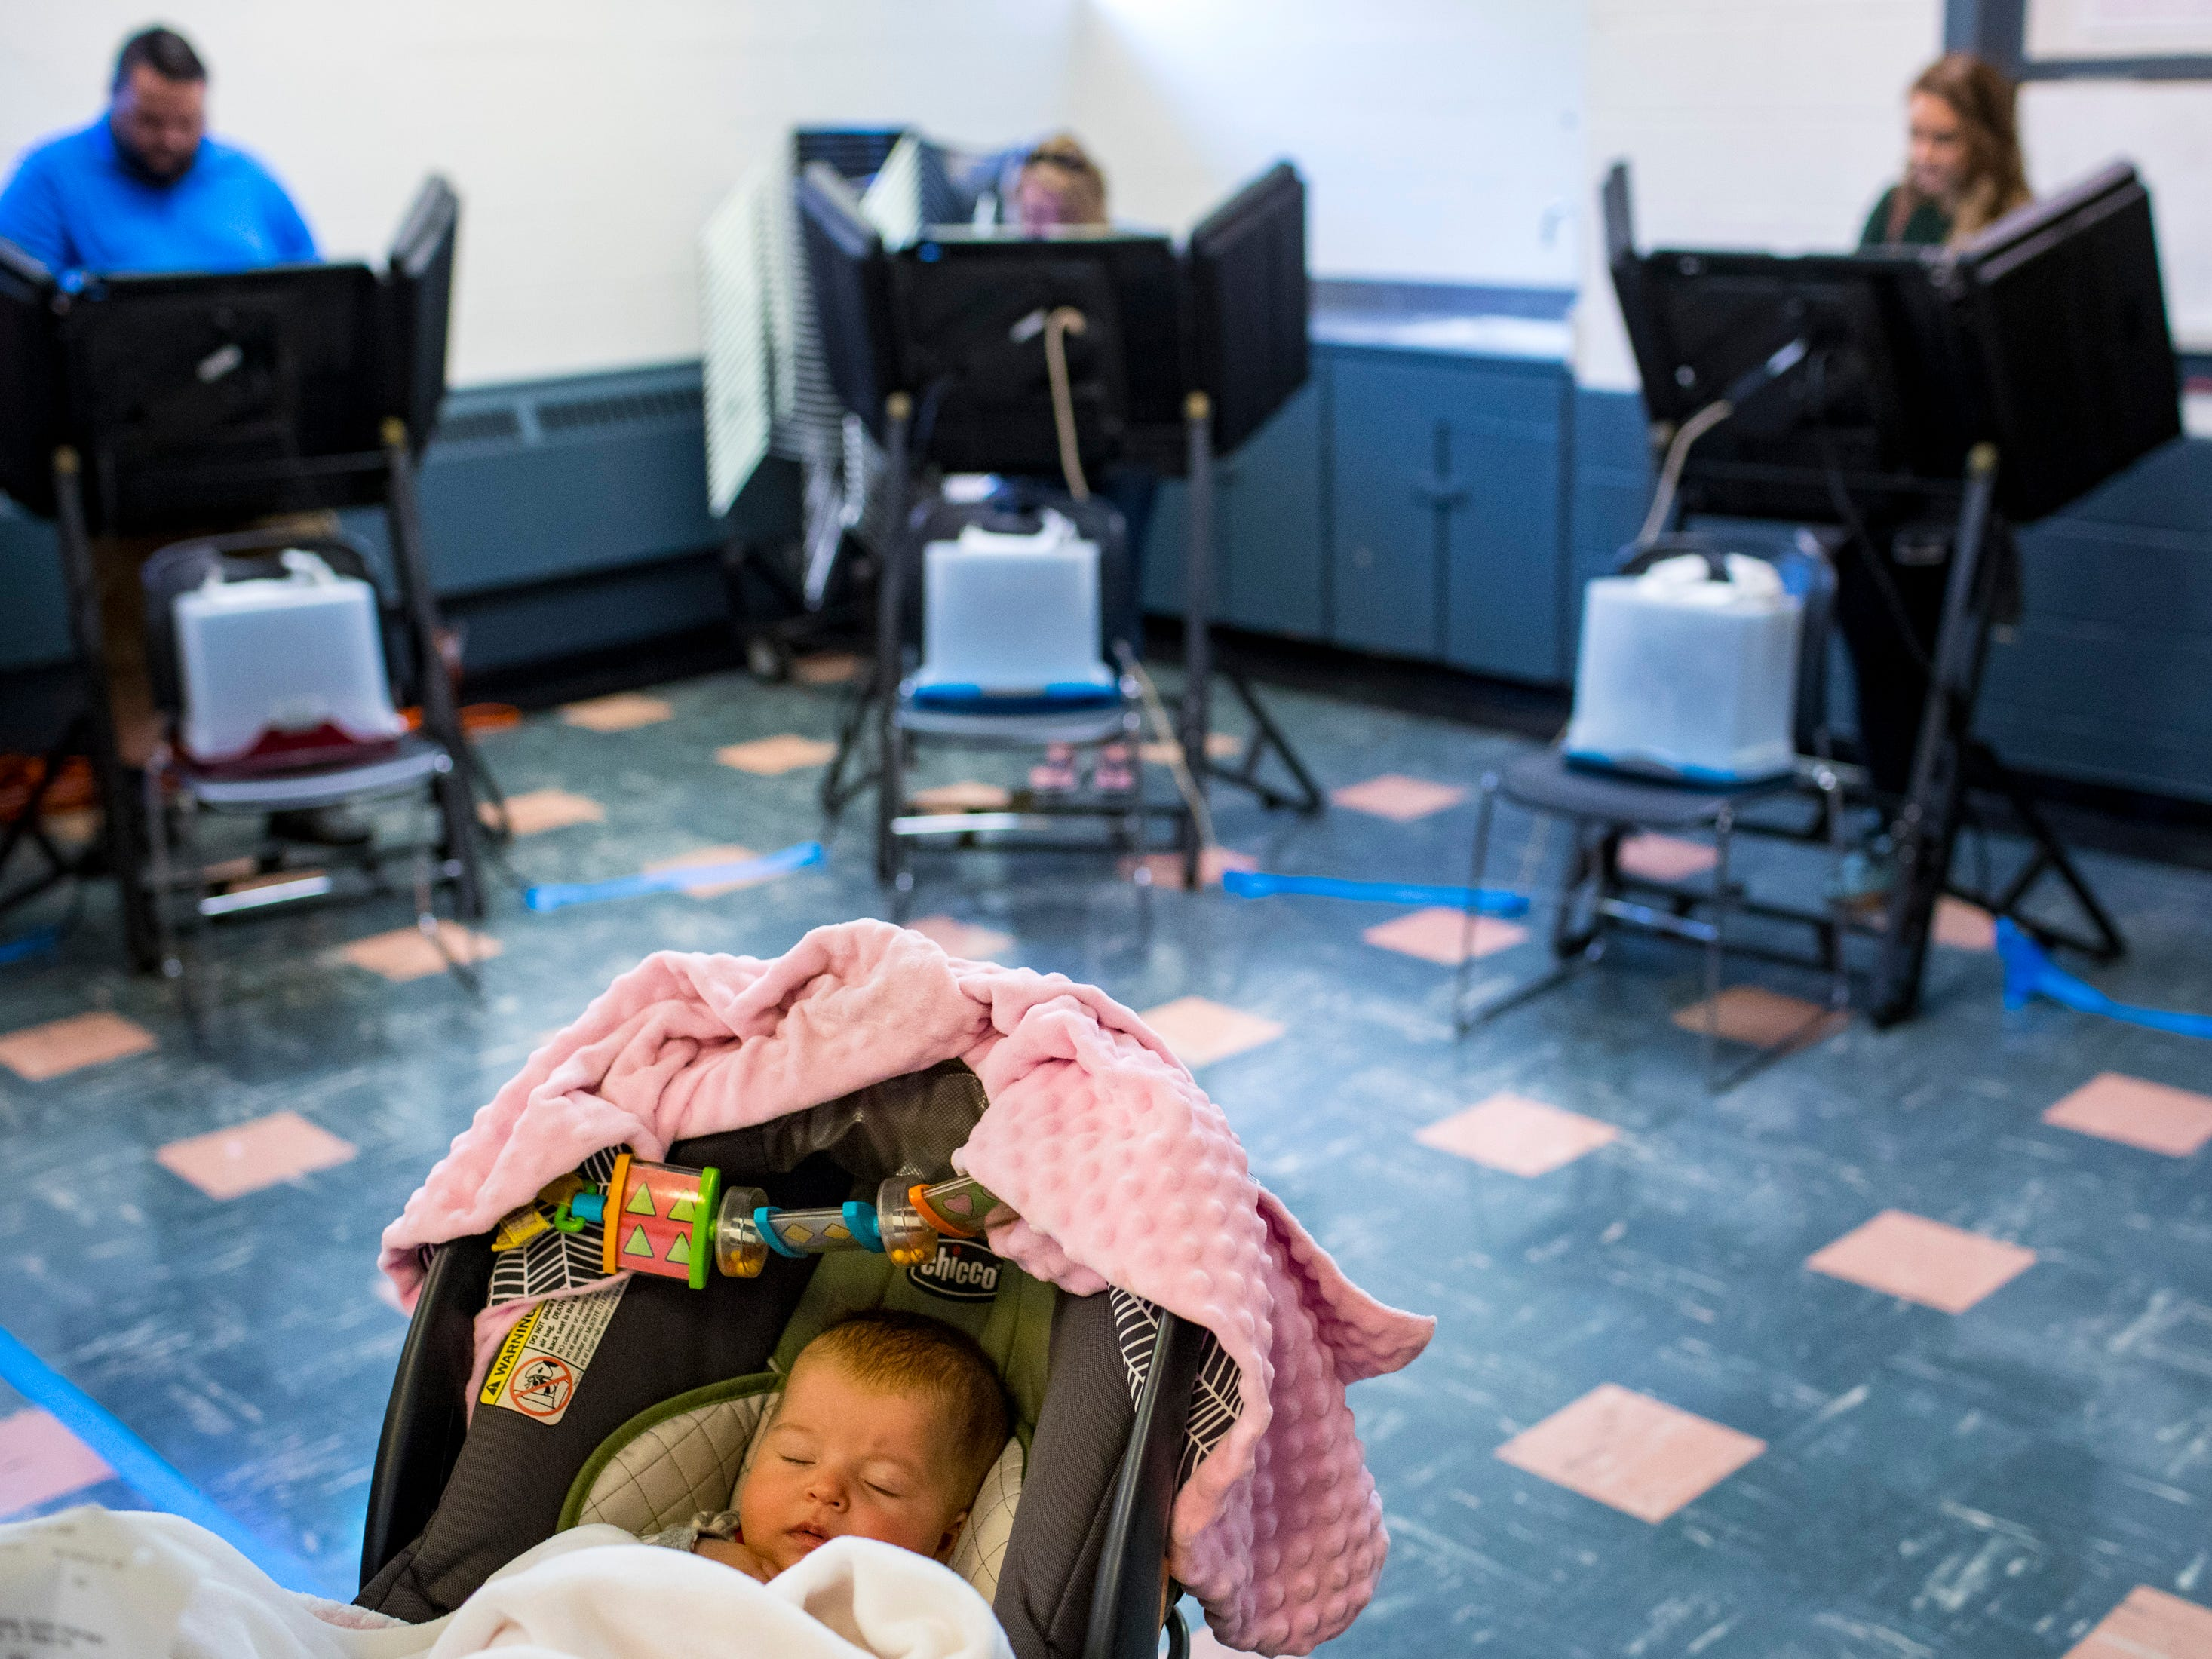 Mary Wells, 3 months, lies in a stroller while waiting in line at the Shelby Park Community Center polling place in Nashville on Tuesday, Nov. 6, 2018.